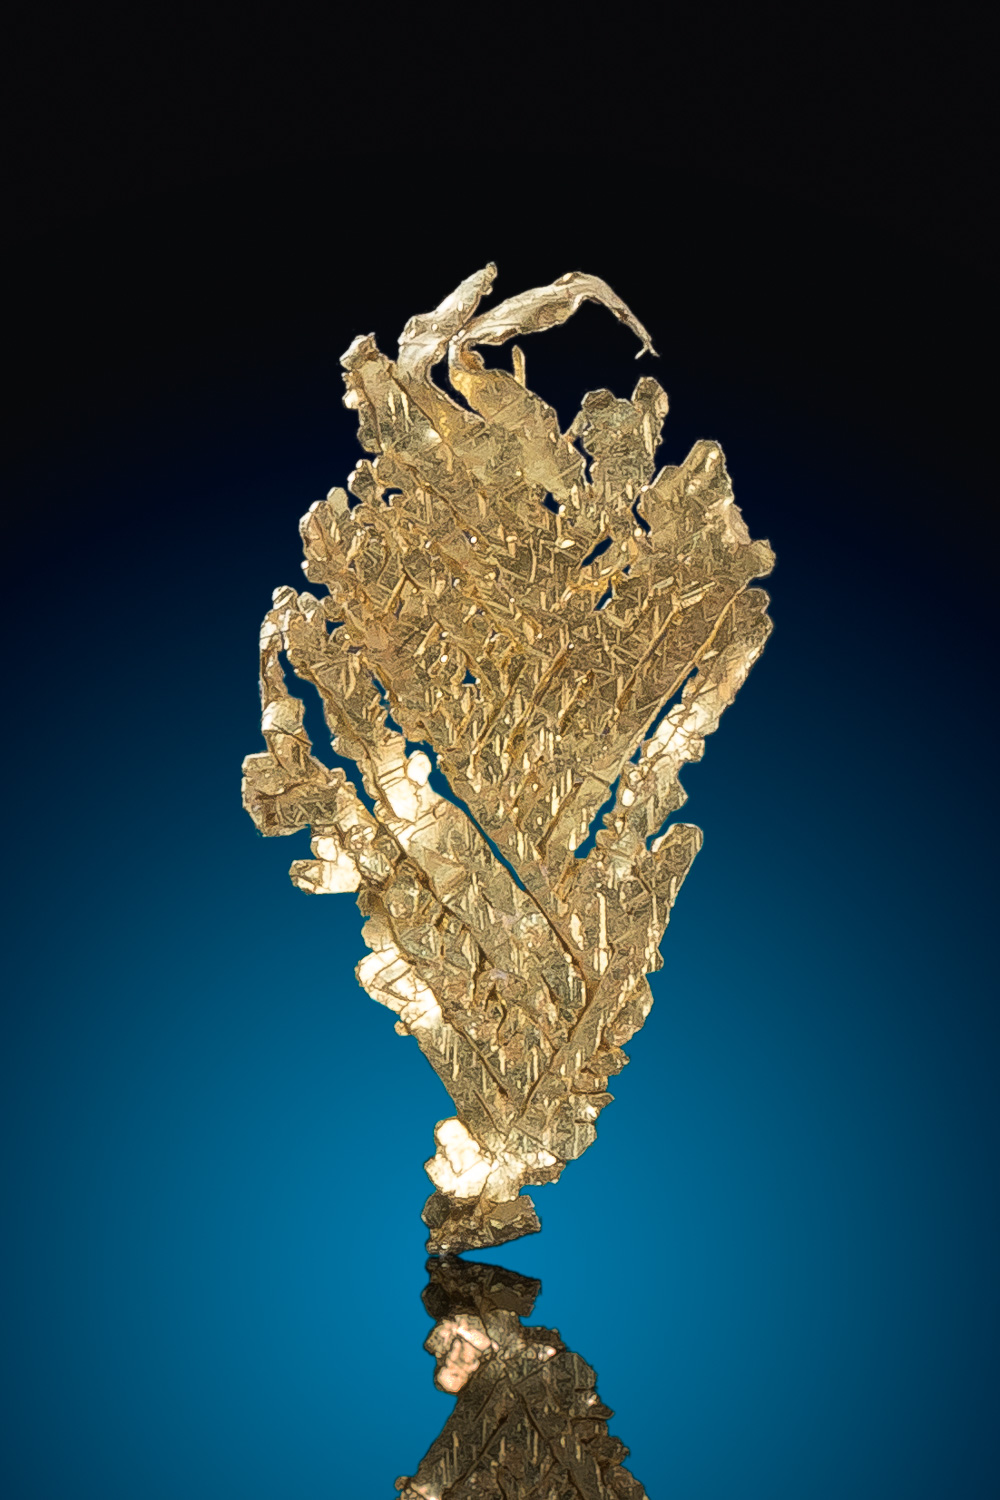 Brilliant Stacked Crystal Formation -Natural Leaf Gold Specimen